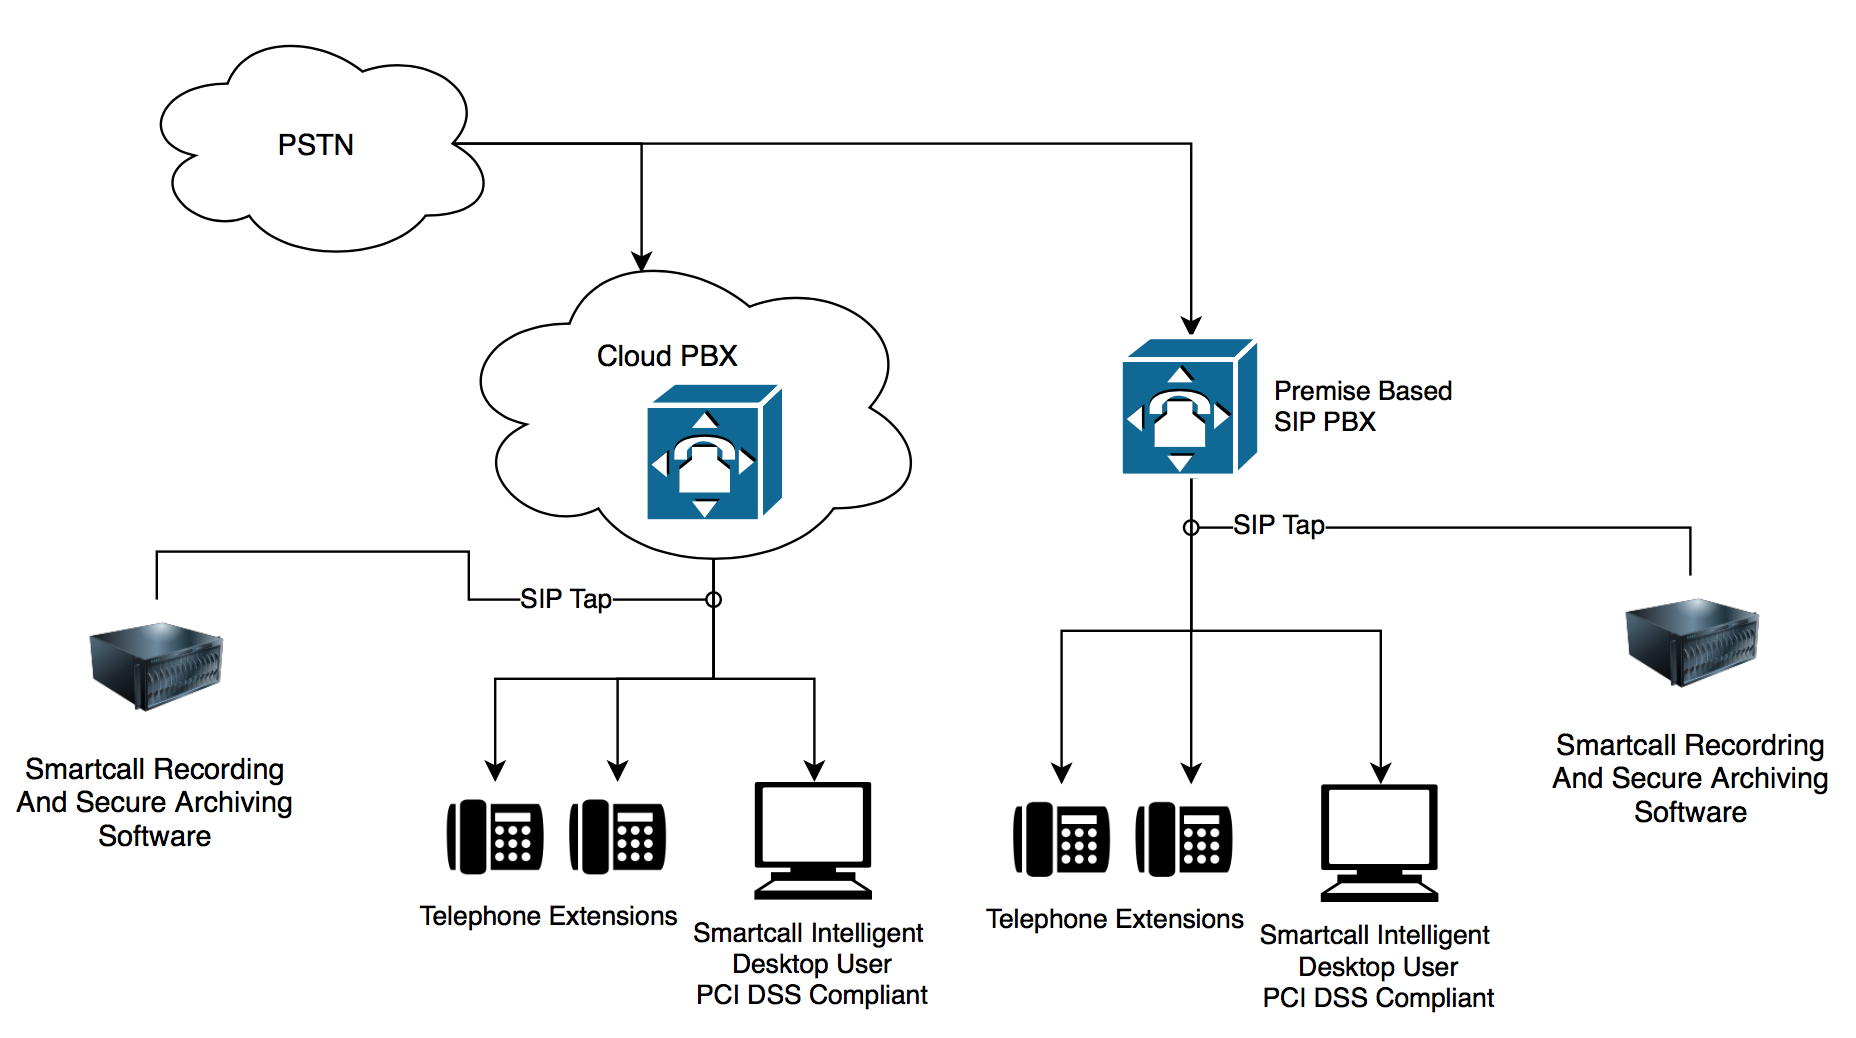 Call Recording Systems for SIP Telephony